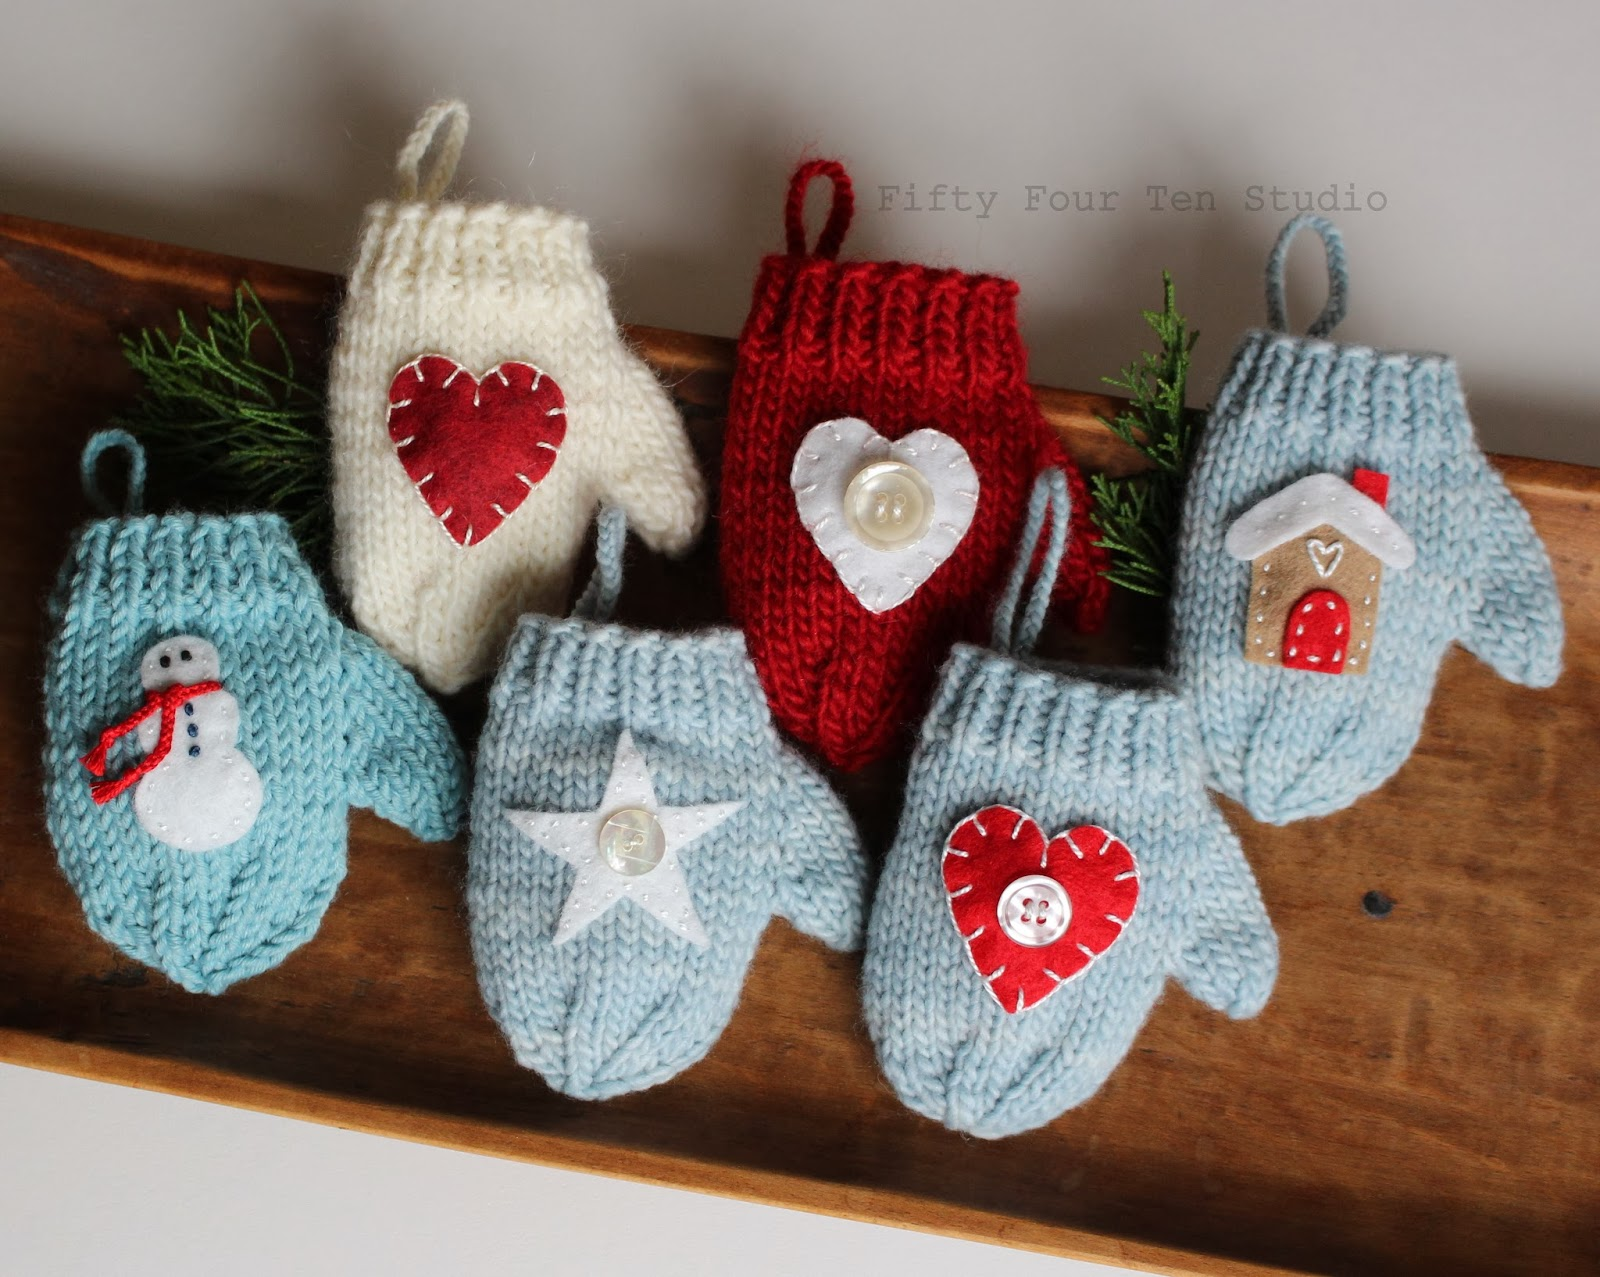 Fifty Four Ten Studio: Time to Knit Christmas Ornament Presents for ...